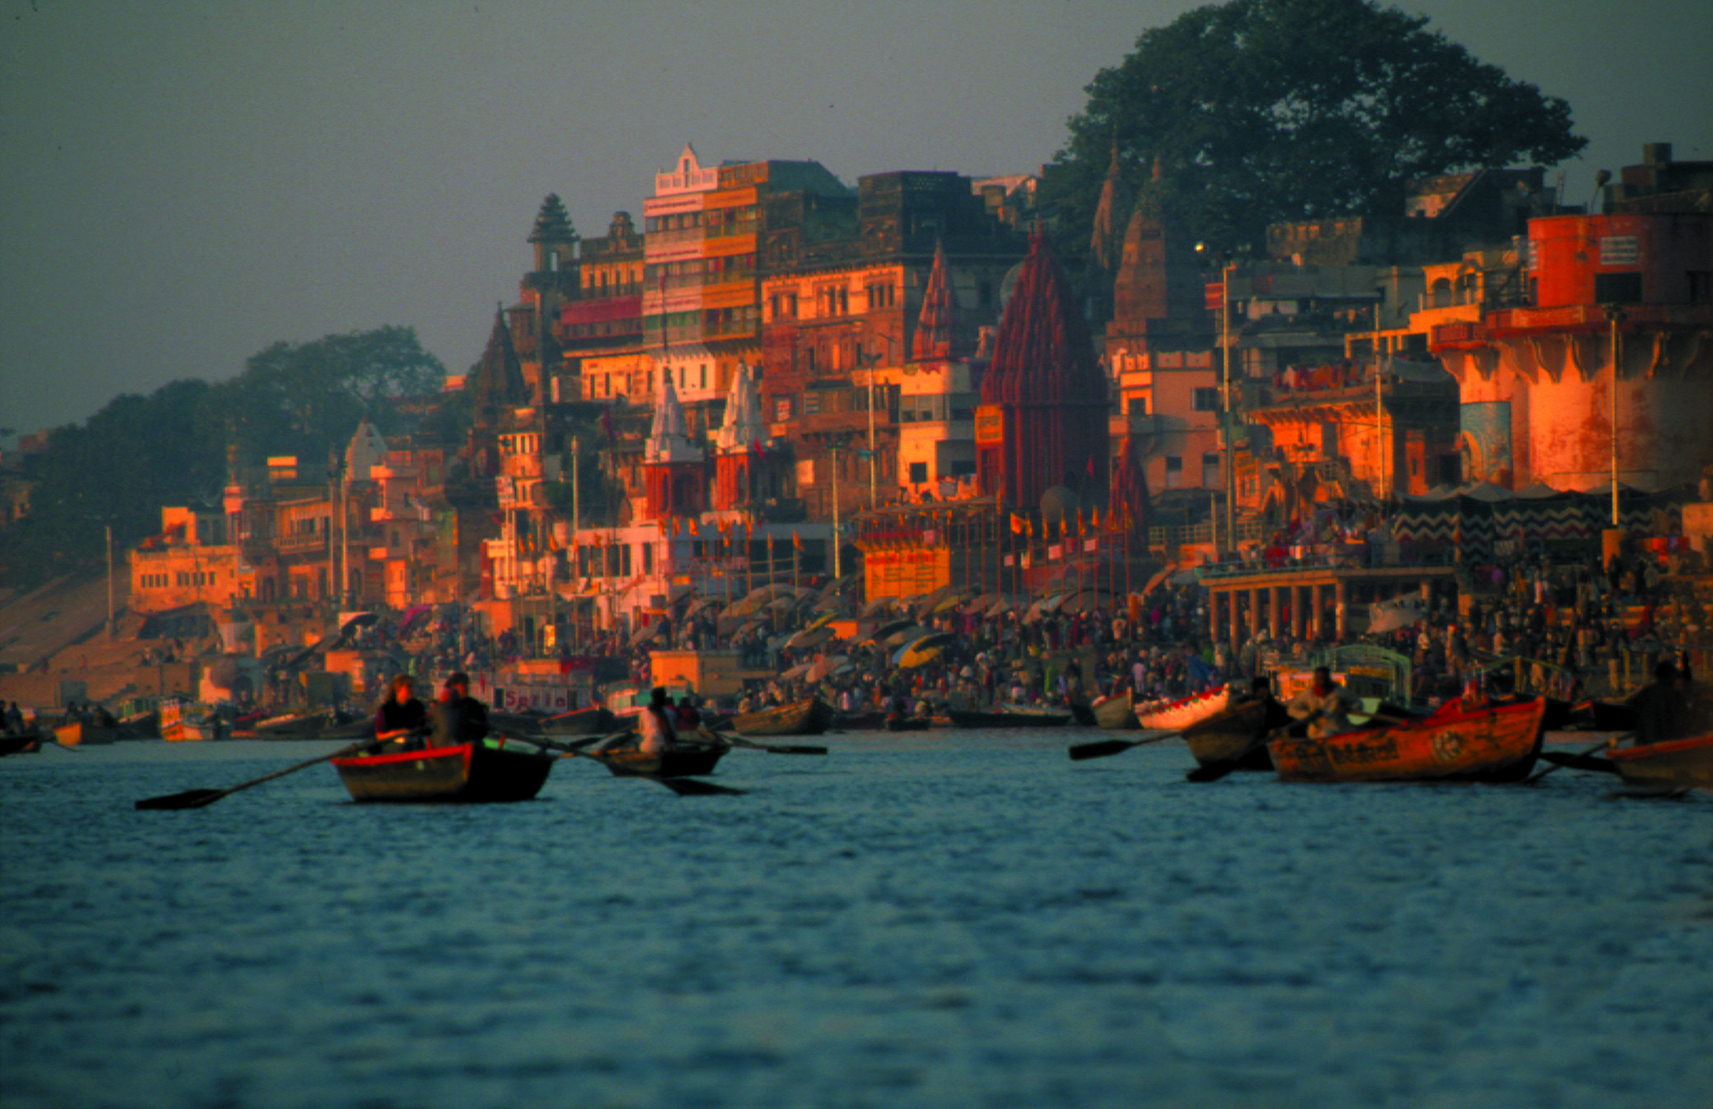 Ganges. Benares, India.